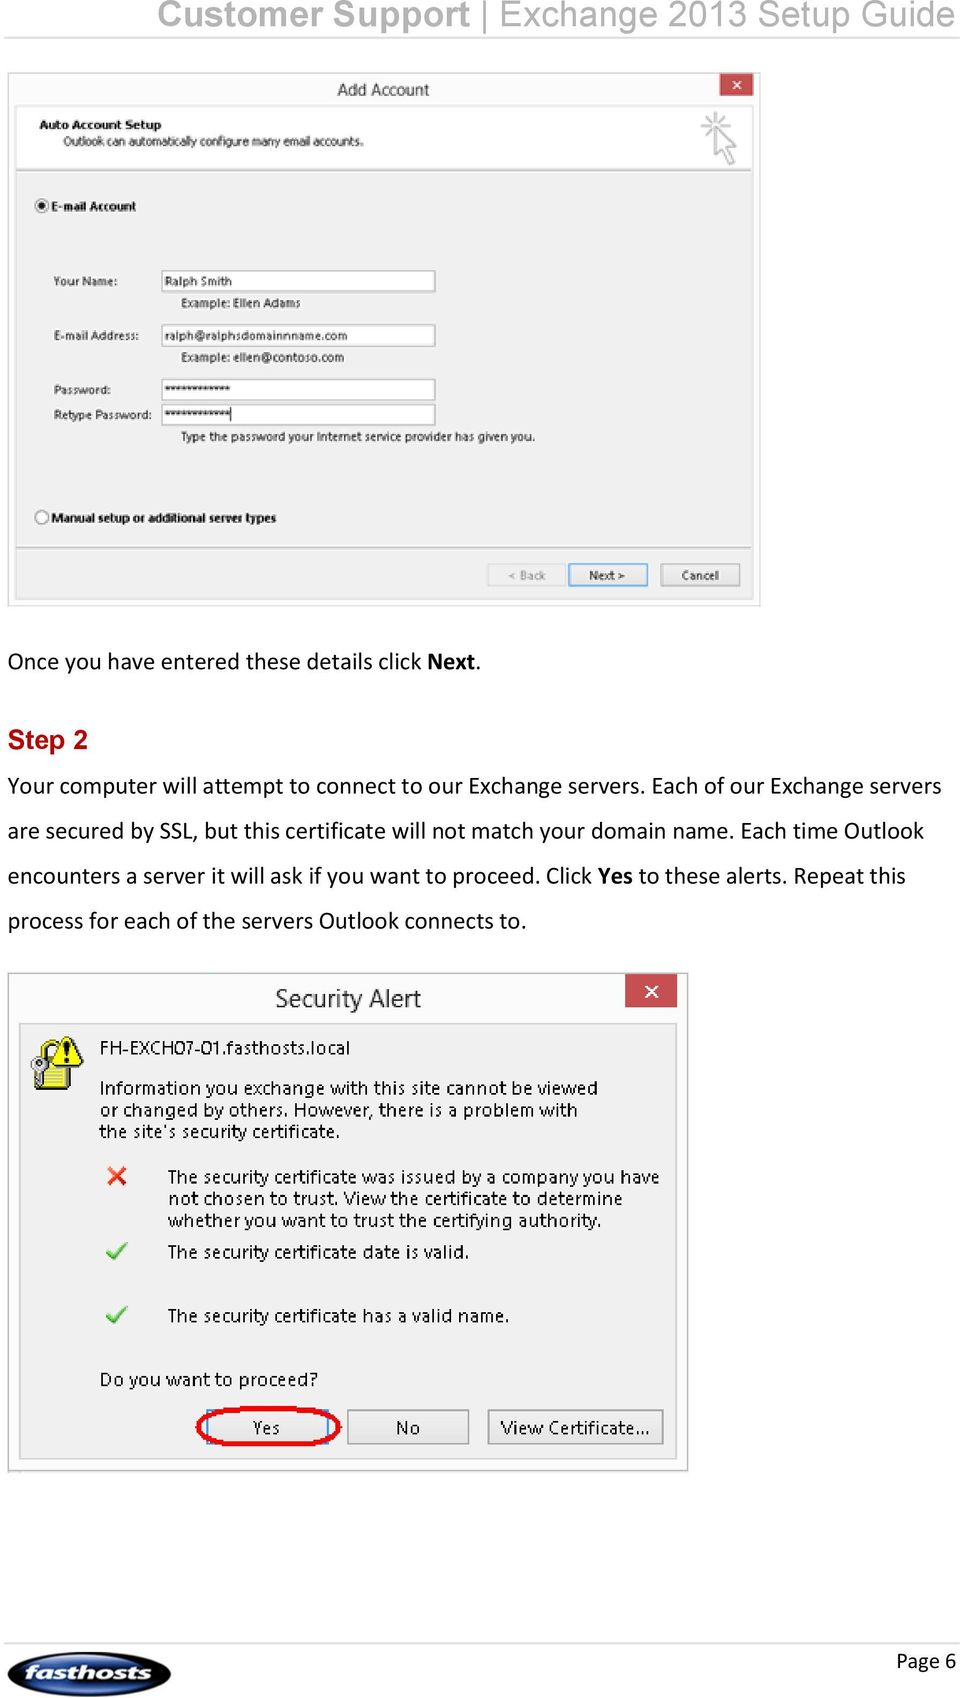 Each of our Exchange servers are secured by SSL, but this certificate will not match your domain